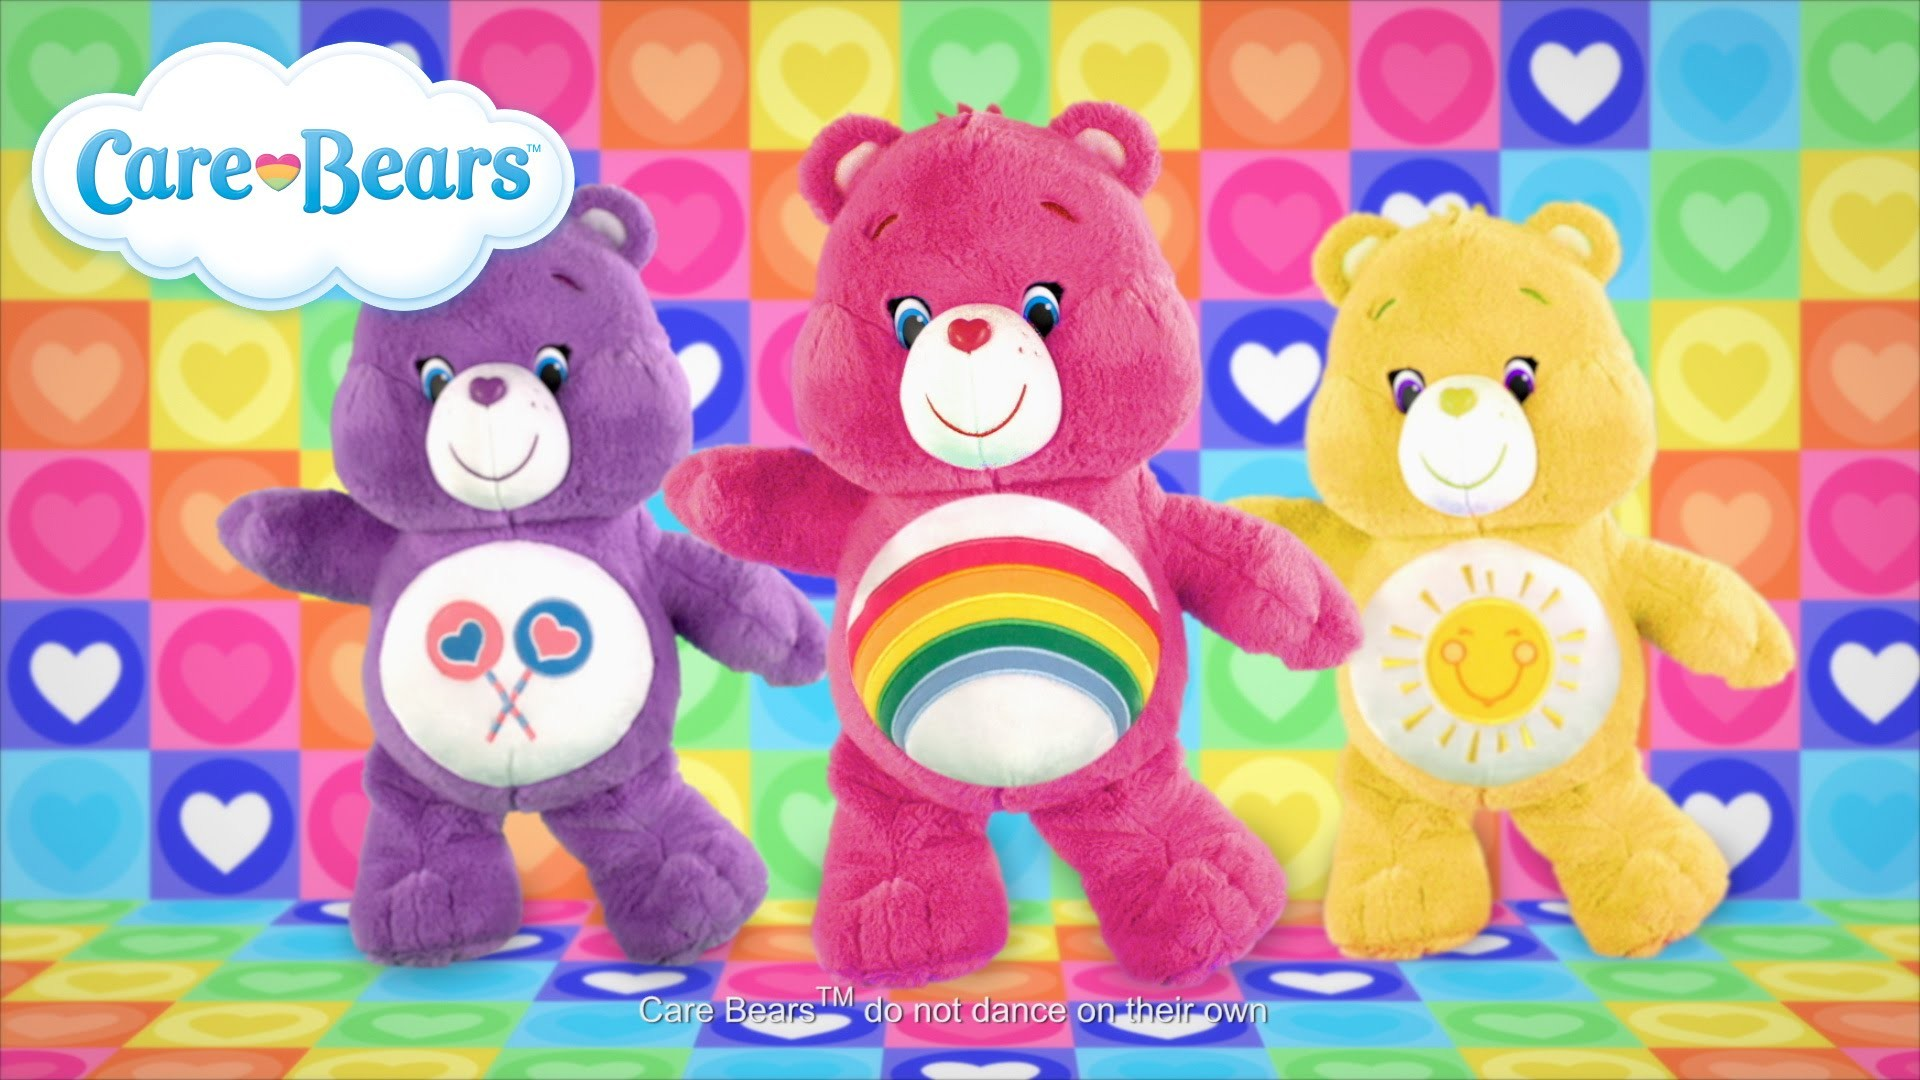 the care bears Wallpaper and Background | 1440×900 | ID:491793